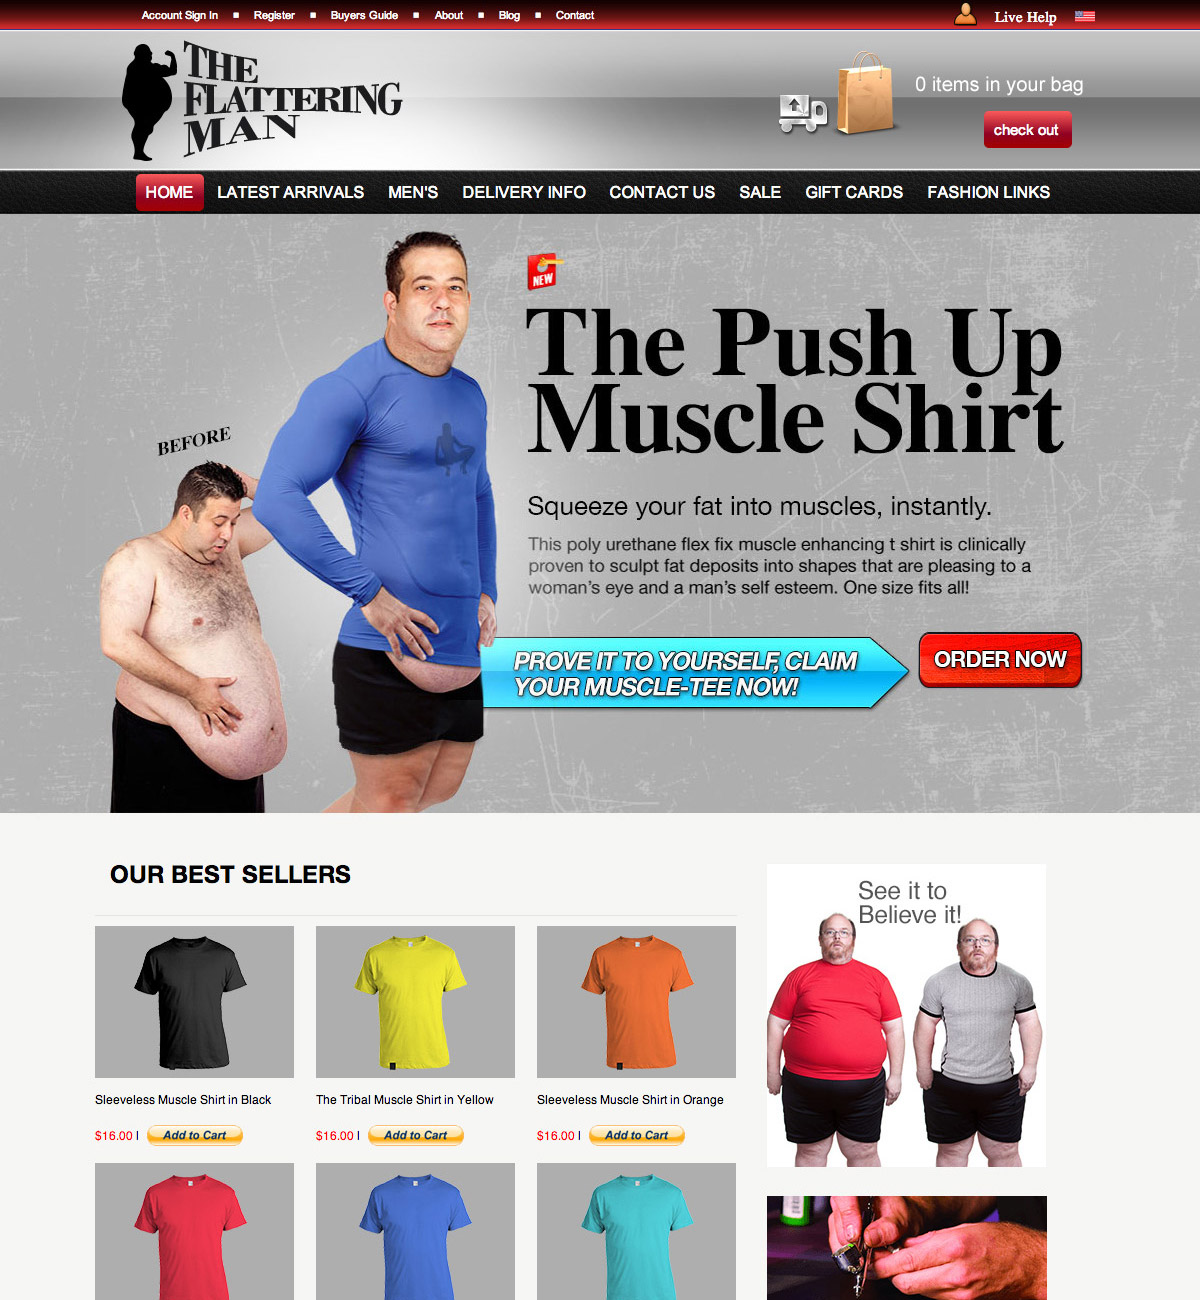 old-spice-the-flattering-man-site